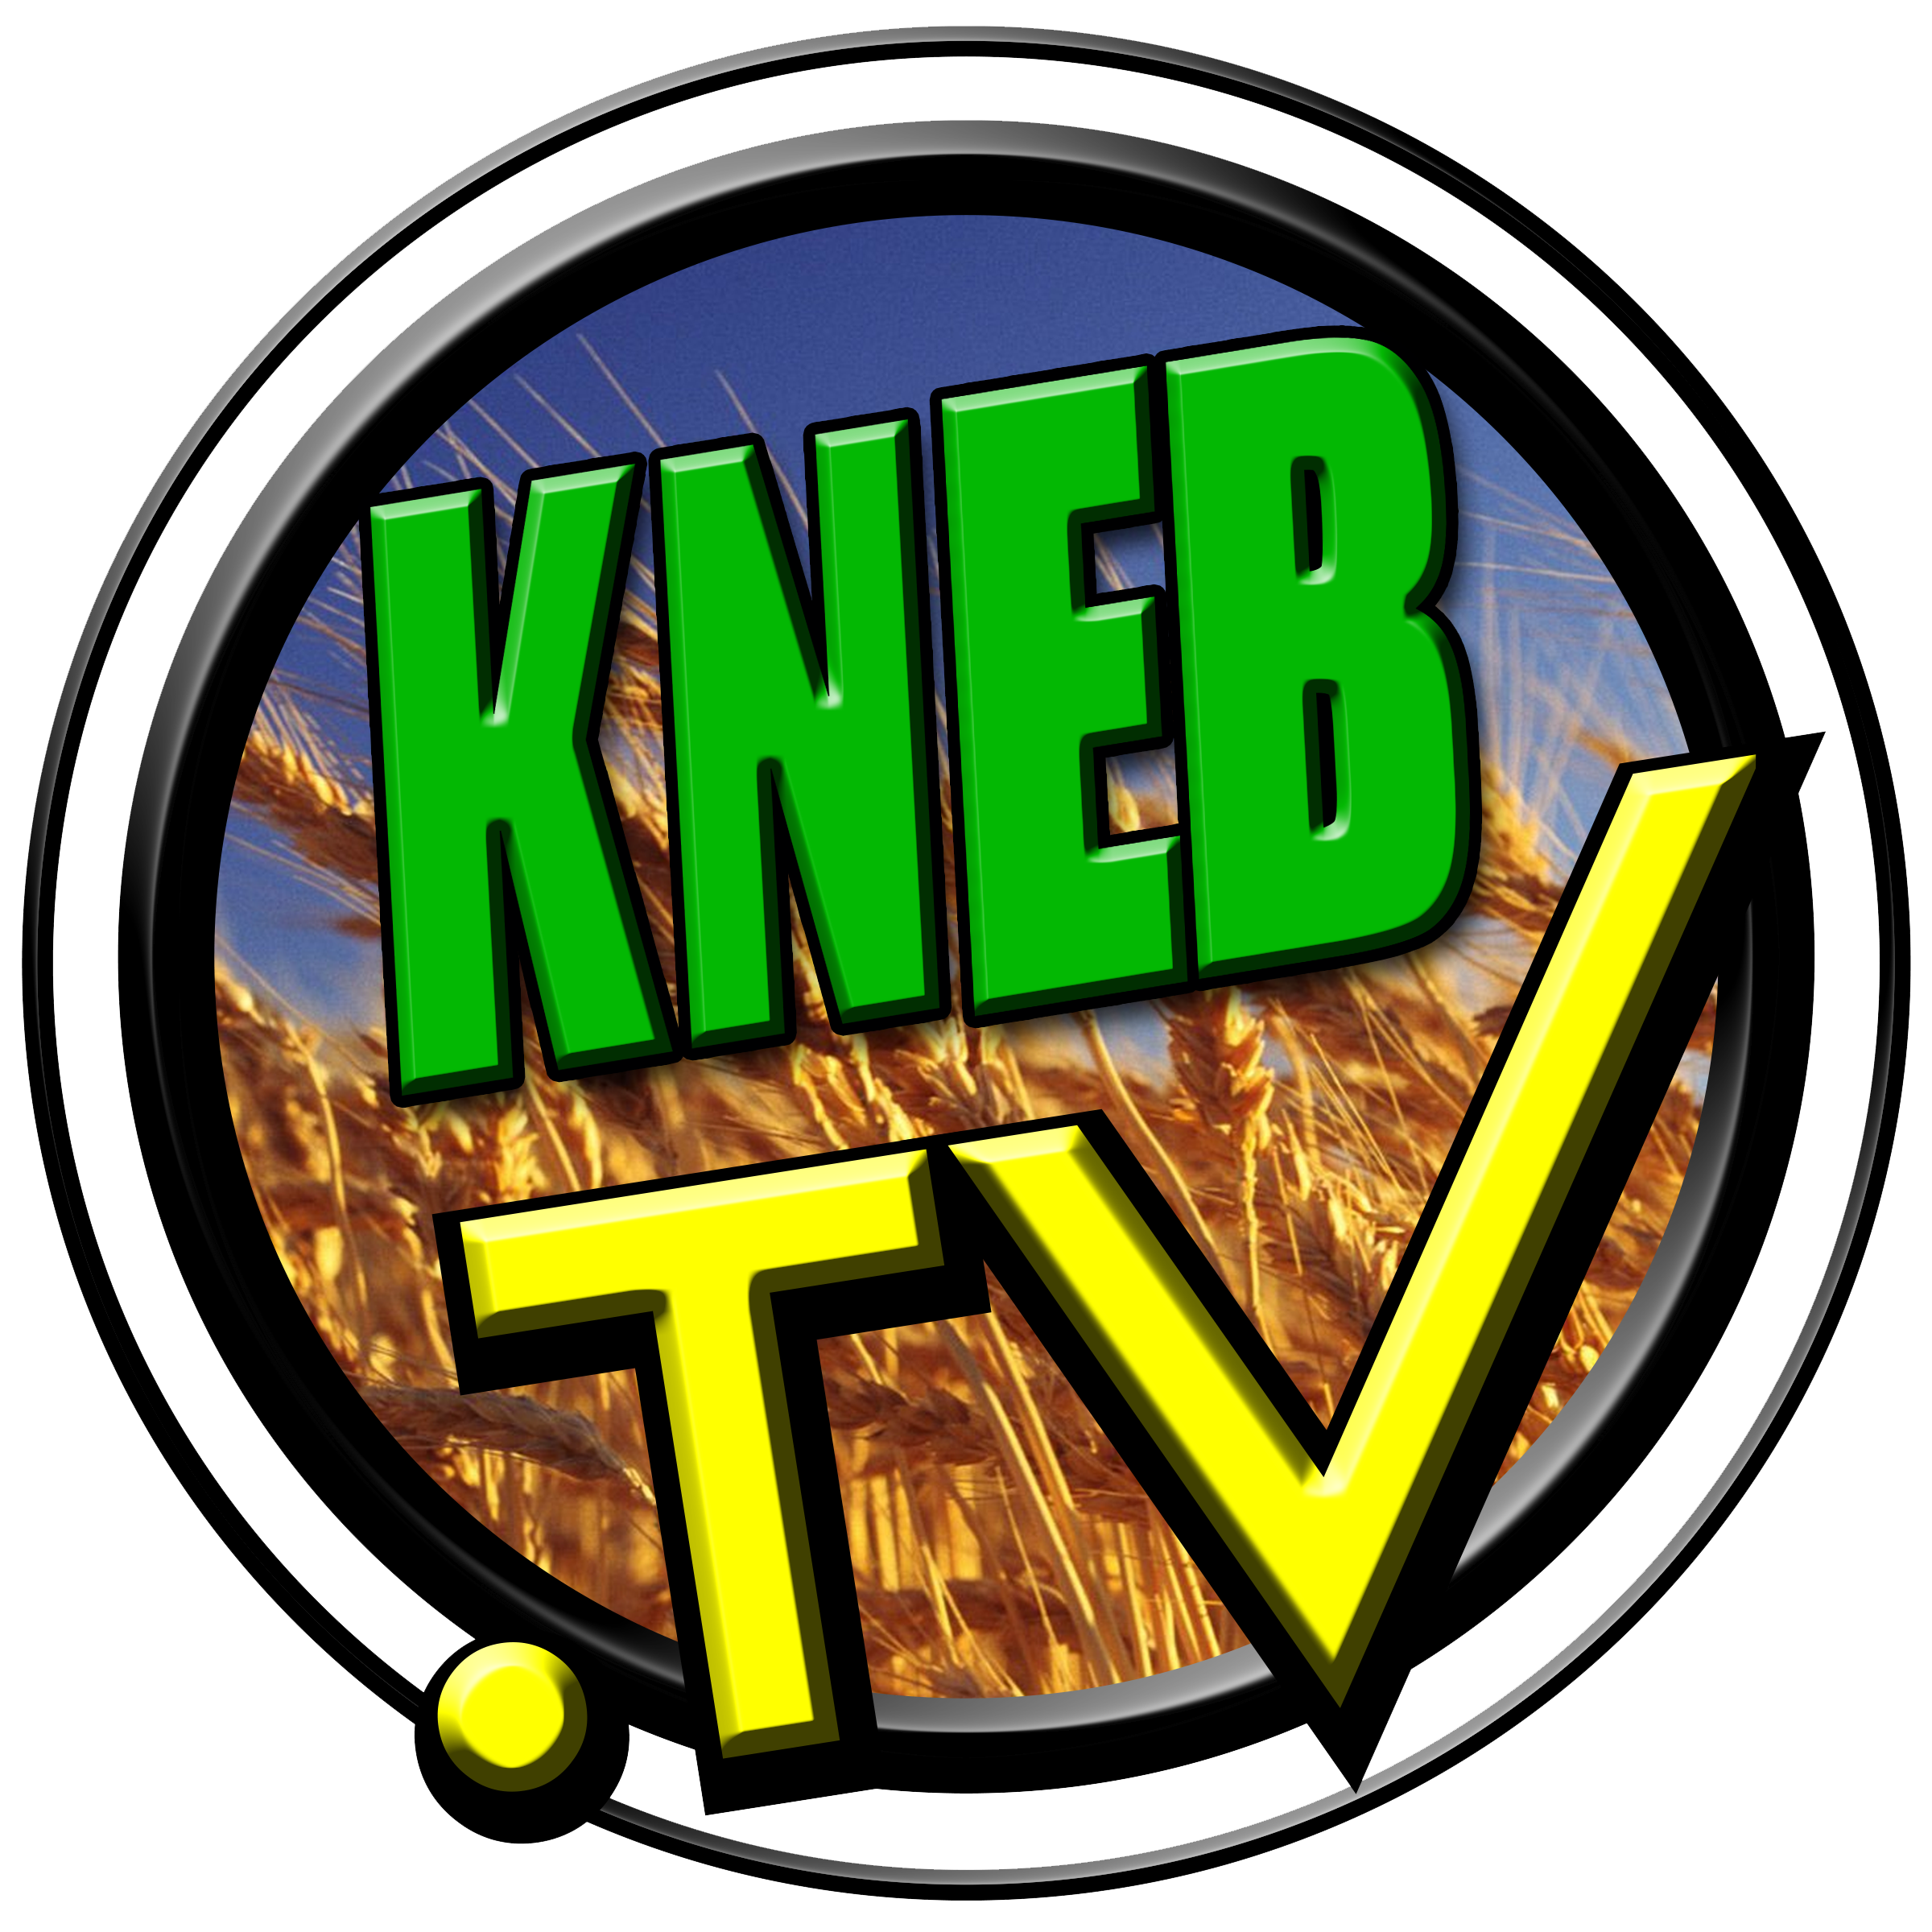 - on KNEB.tv & 106.9 FM The Trail